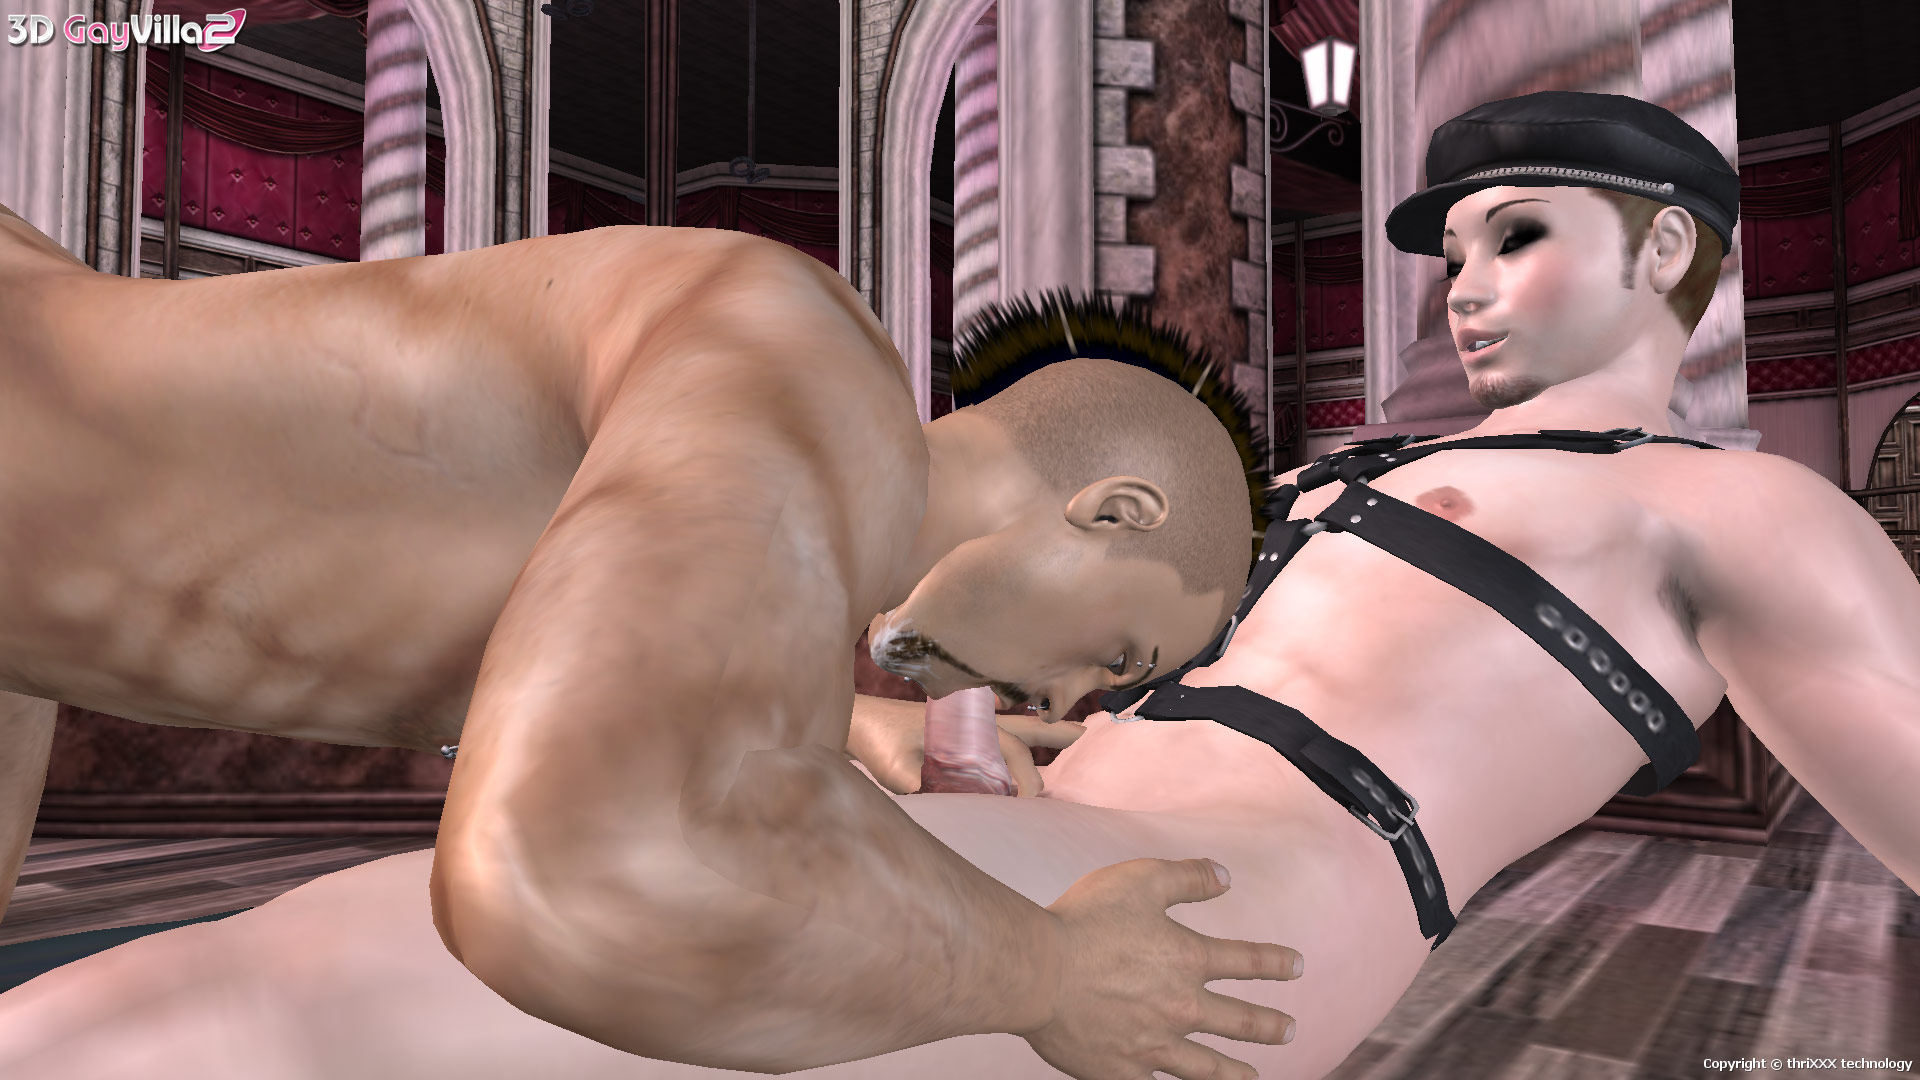 3D Interactive Porn Games 3d sex games - interactive virtual sex simulations - 3d gayvilla